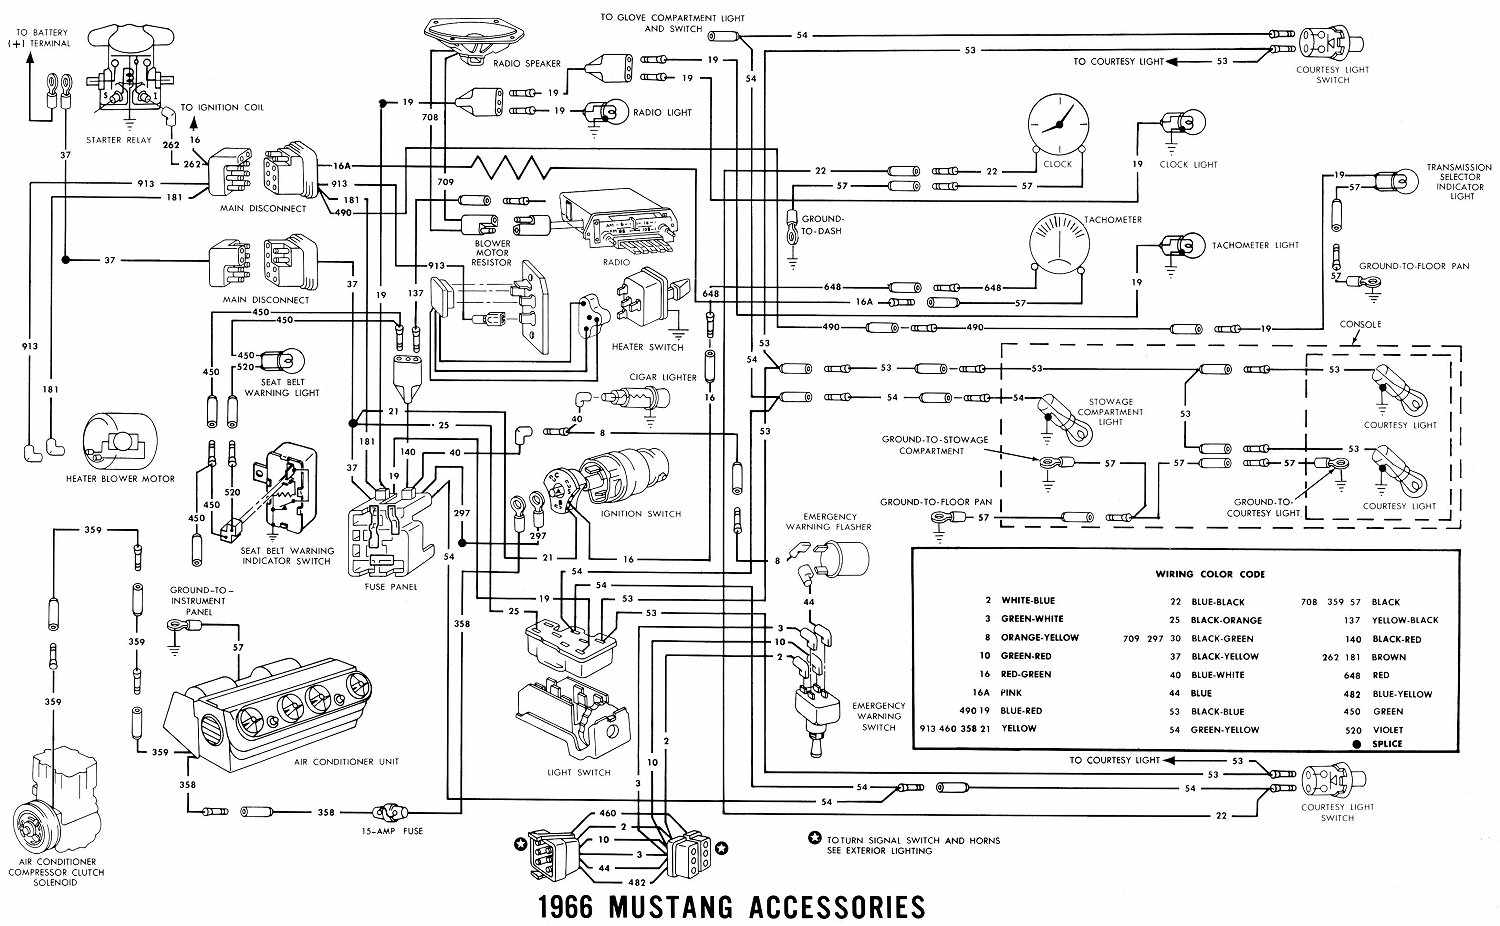 medium resolution of wiring diagrams 911 1966 mustang complete accessories wiring diagram pac 80 goldwing wiring diagram 1966